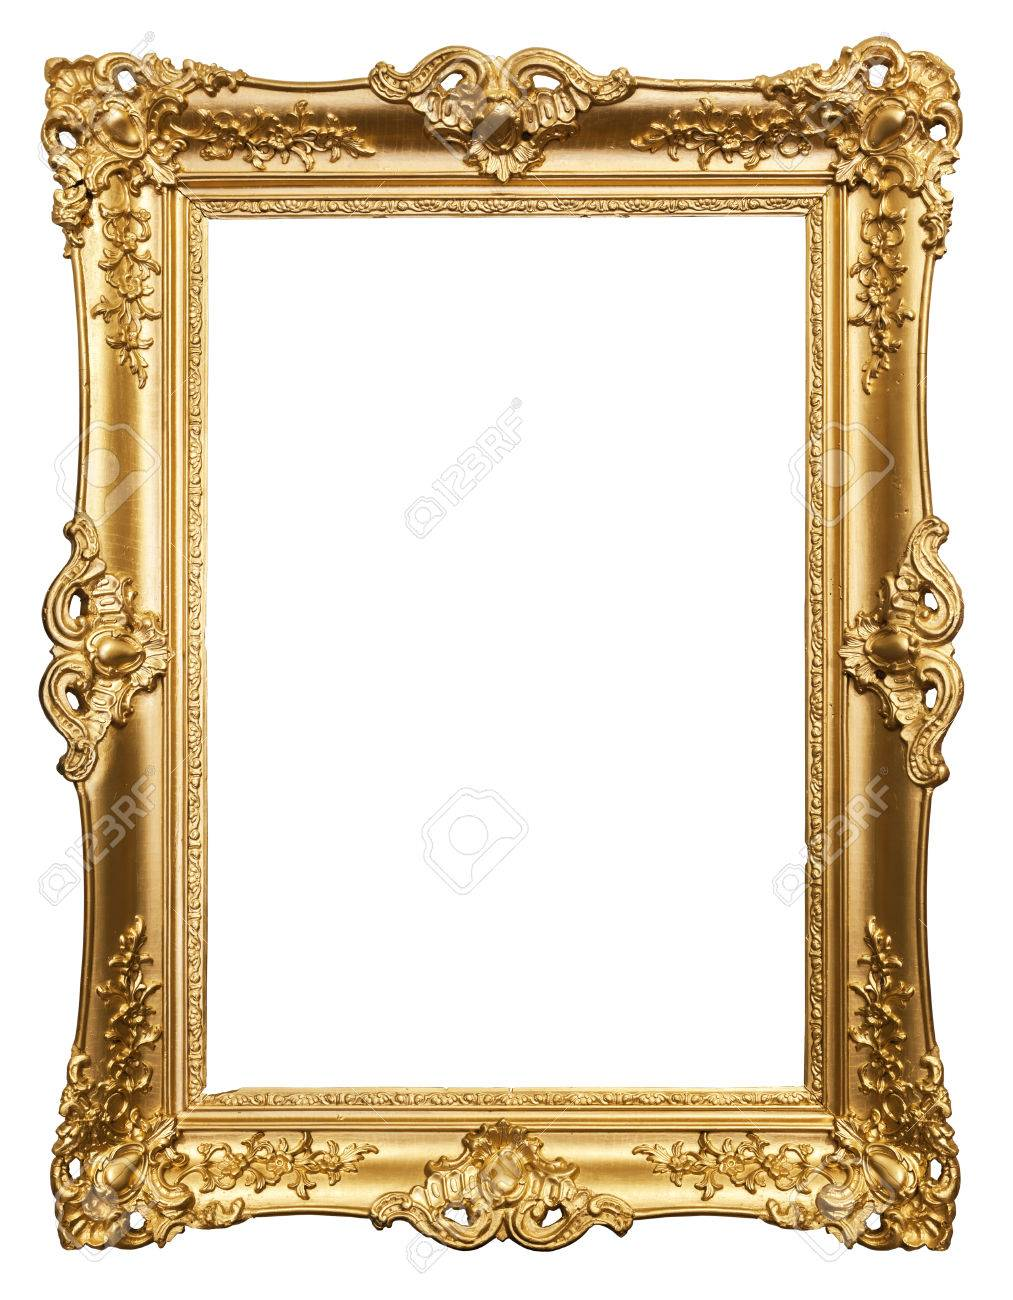 Carved Gilded Frame On A White Background Stock Photo, Picture And ...